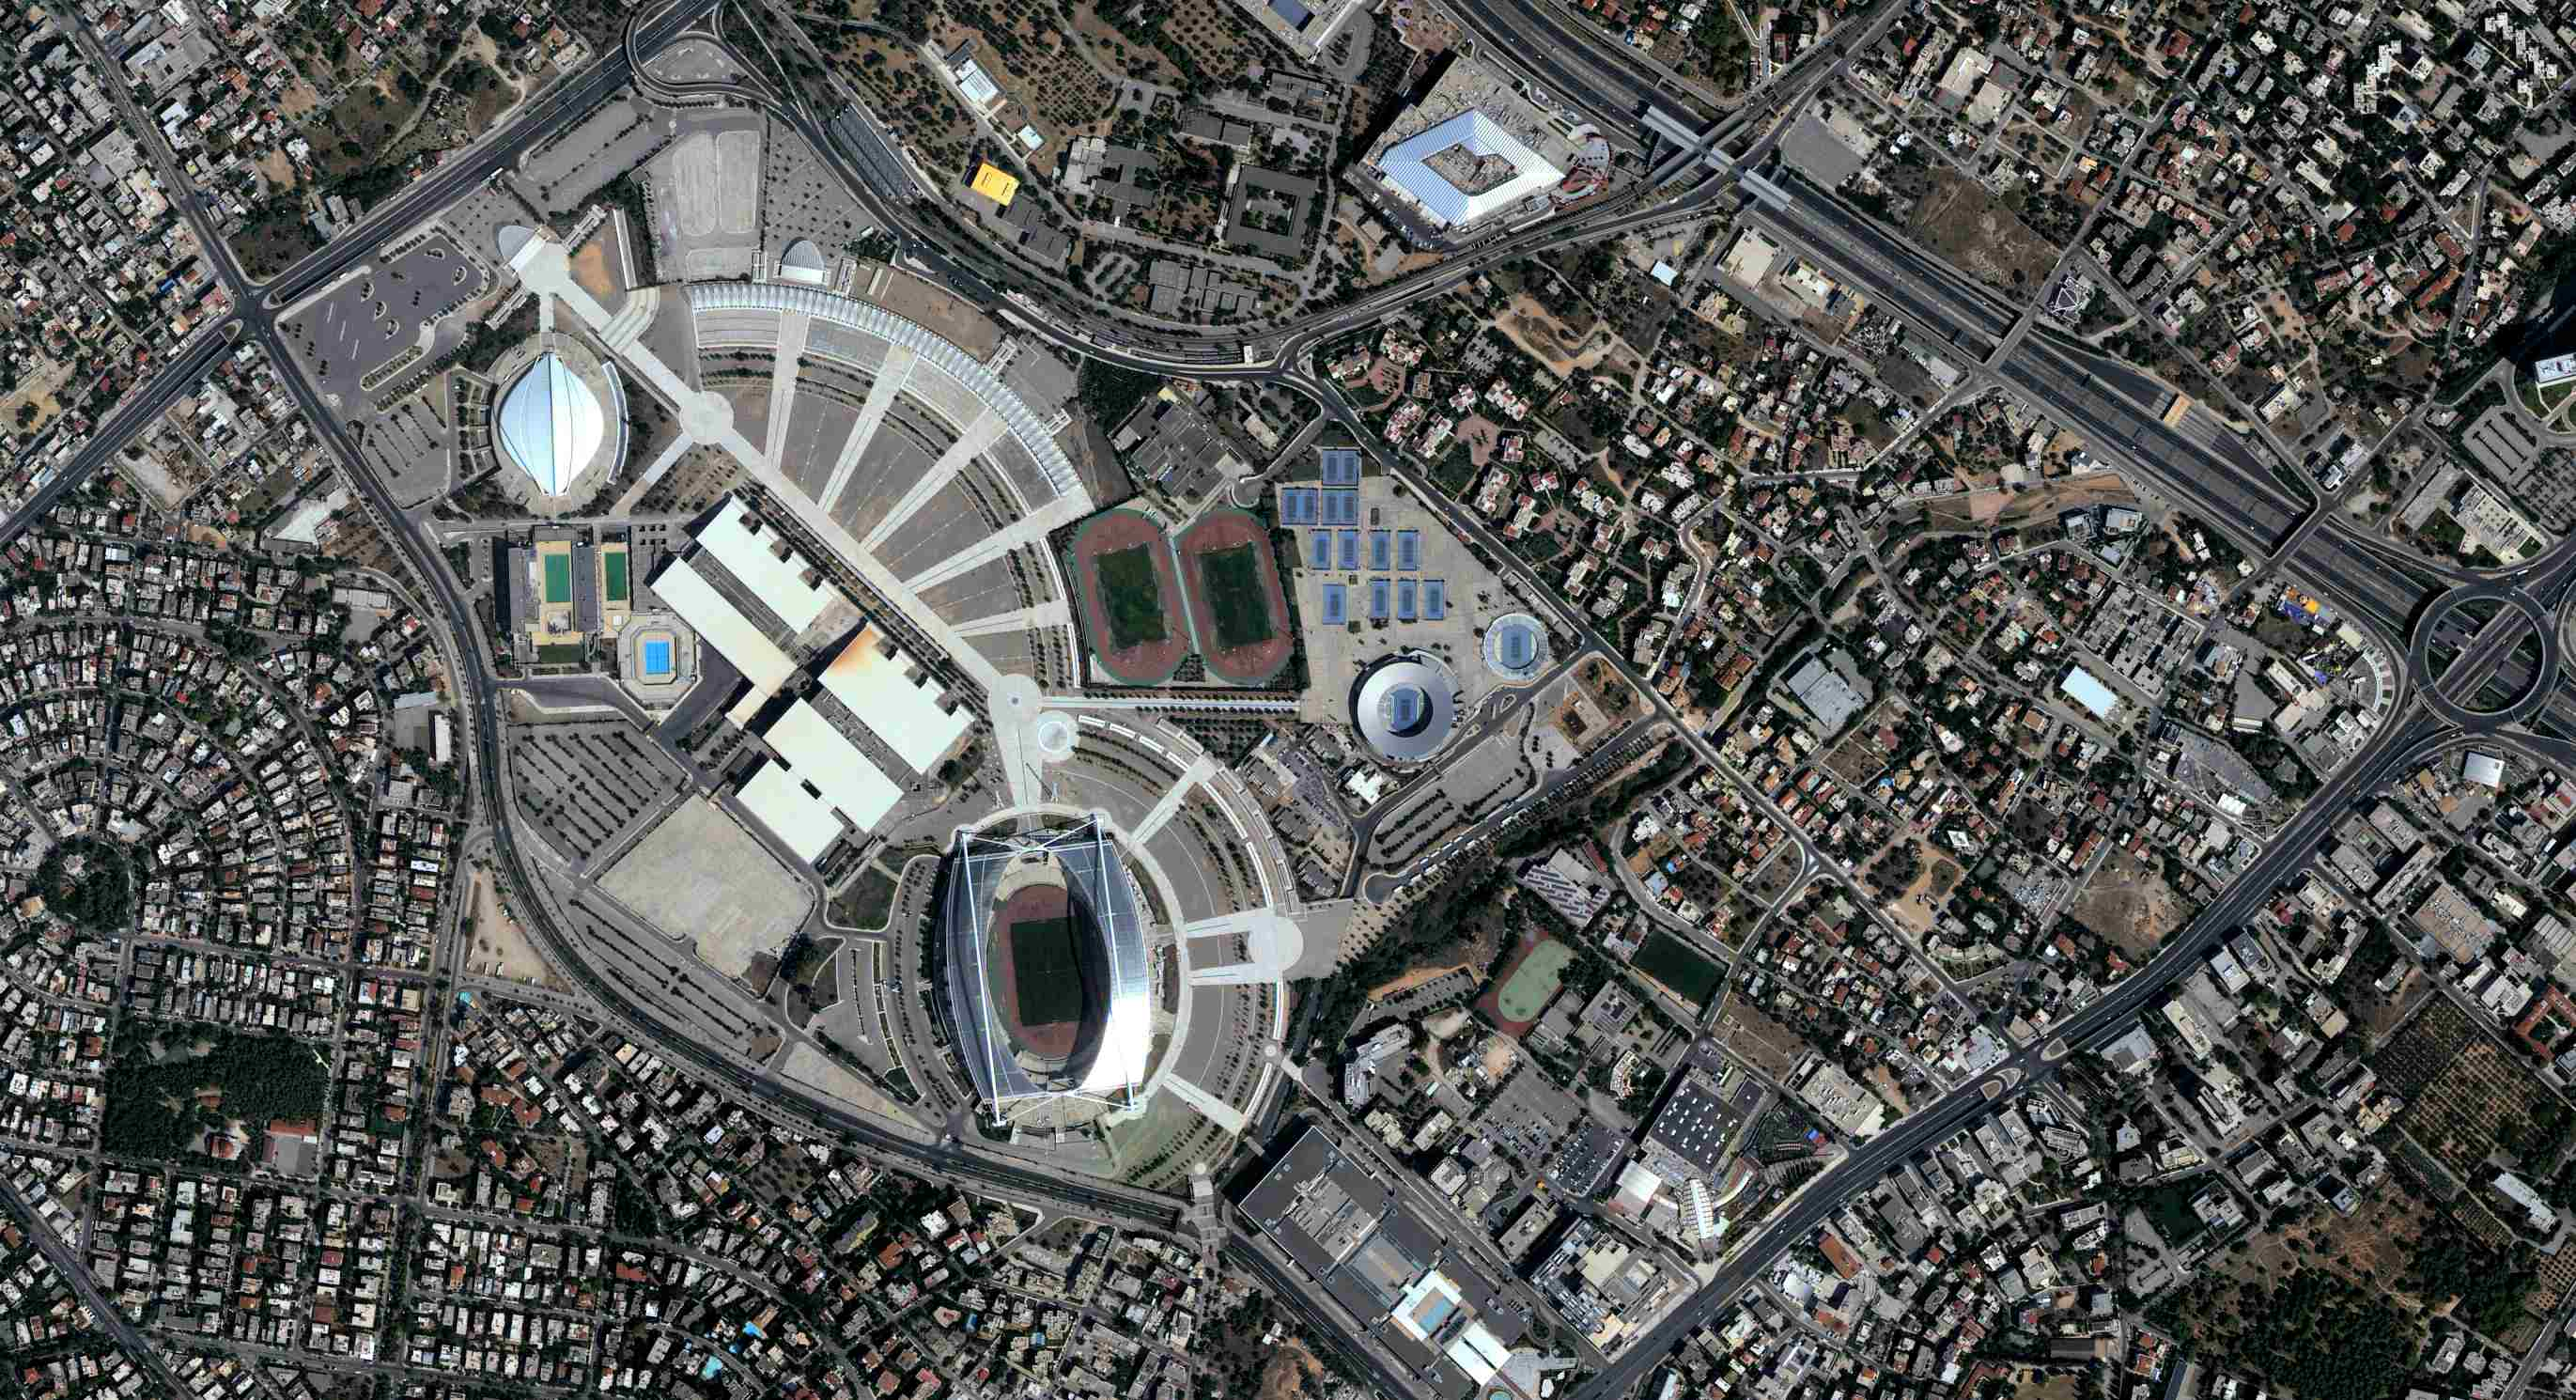 This 1m resolution pan-sharpened image taken on 2nd August 2015 shows the